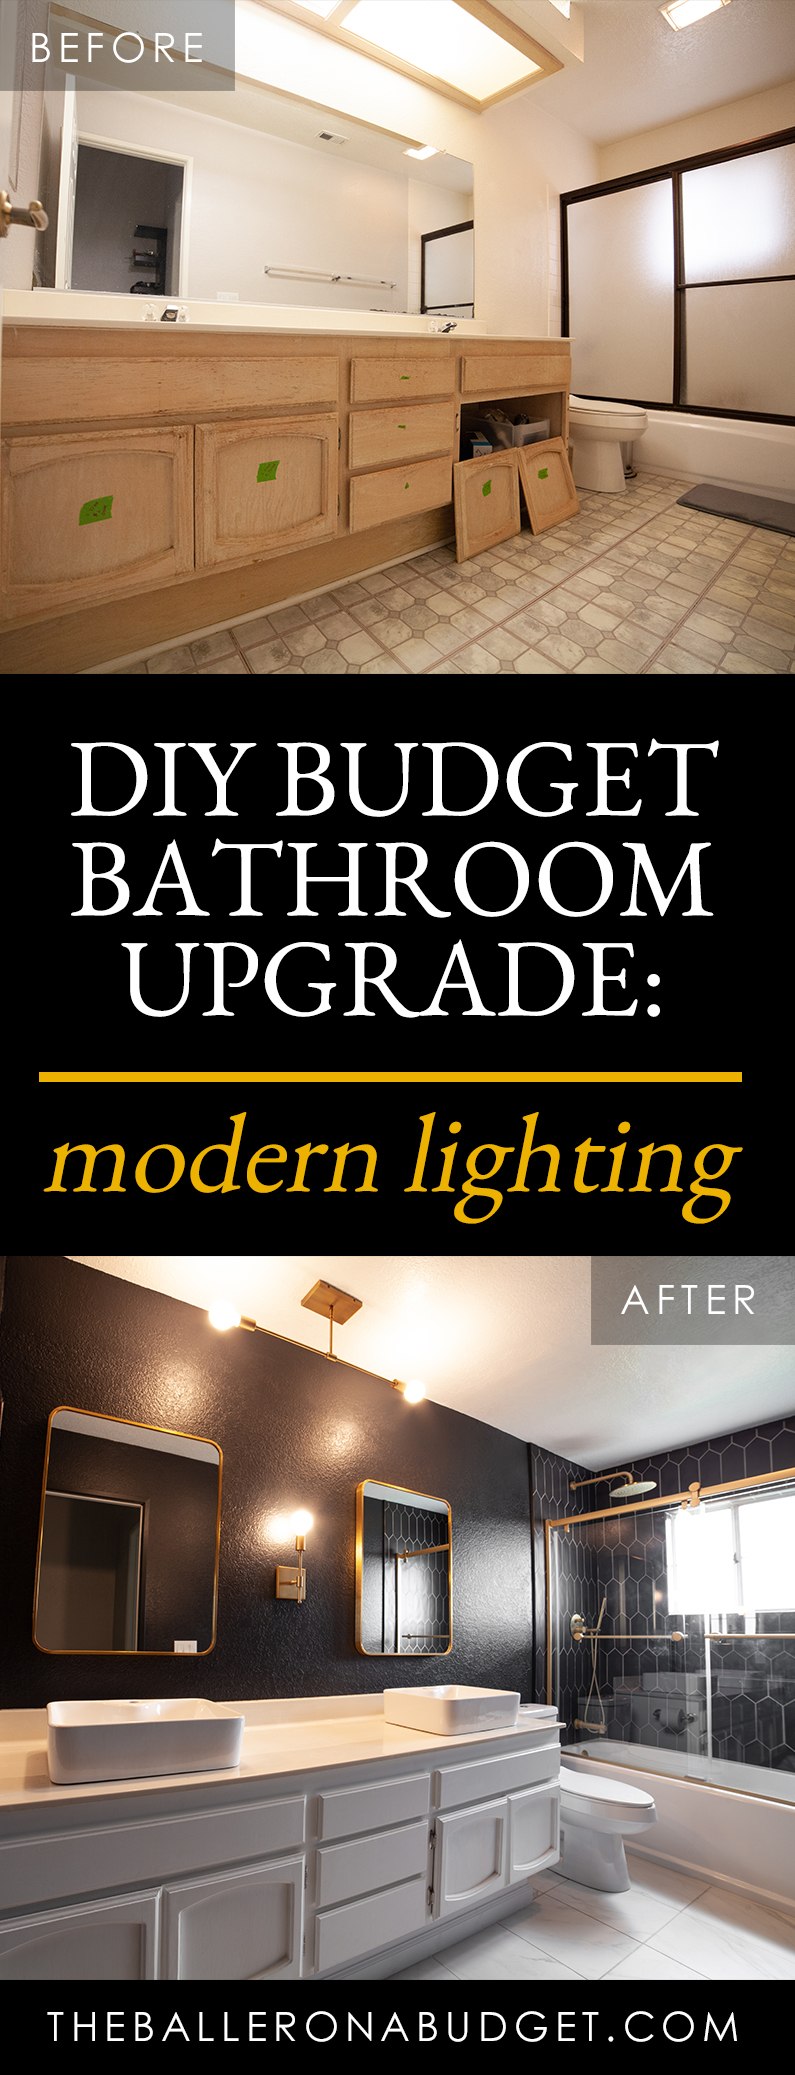 Pinterest graphic featuring before and after photo of DIY bathroom renovation